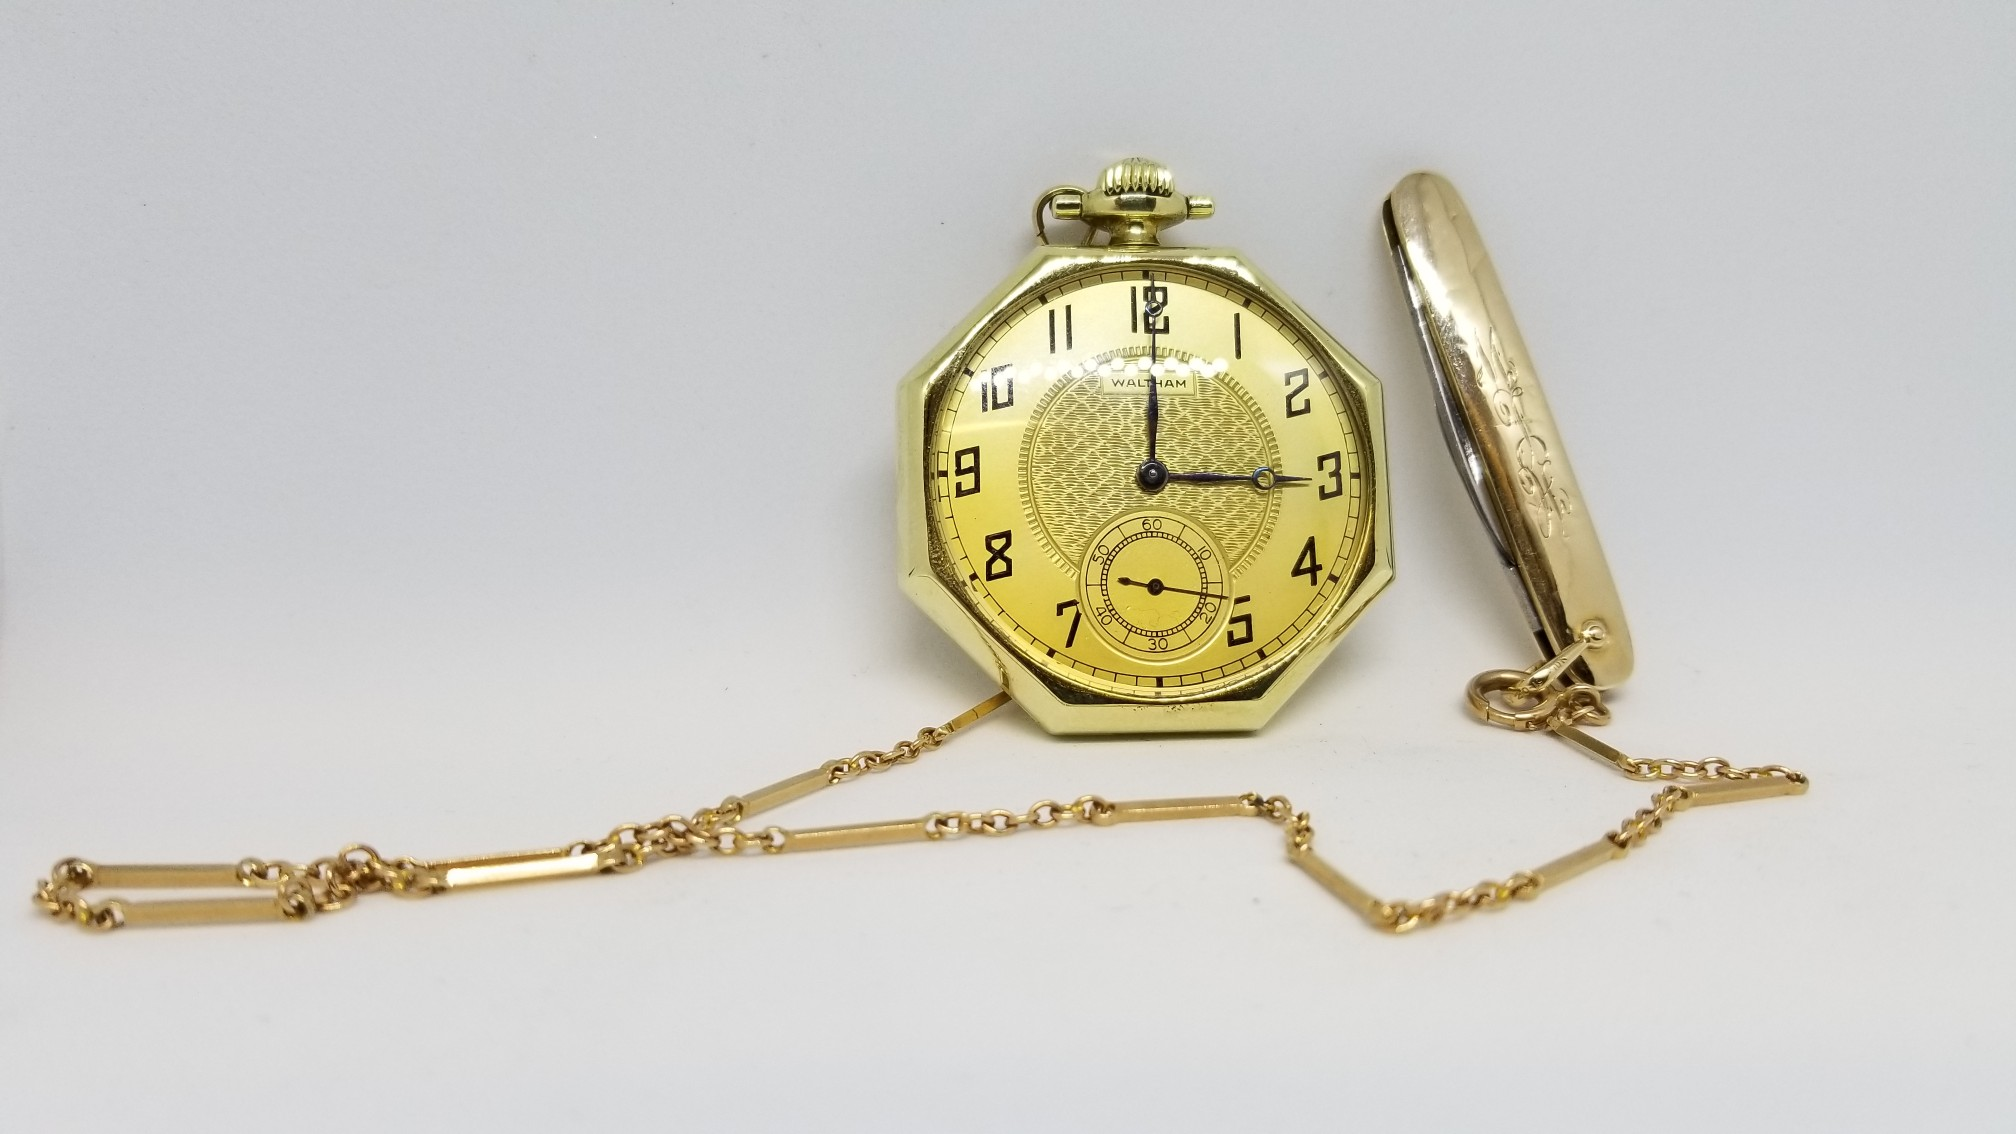 Waltham 12s Pocket Watch Cased In An Octo 14k Gold Case With A 10k Pocket Knife